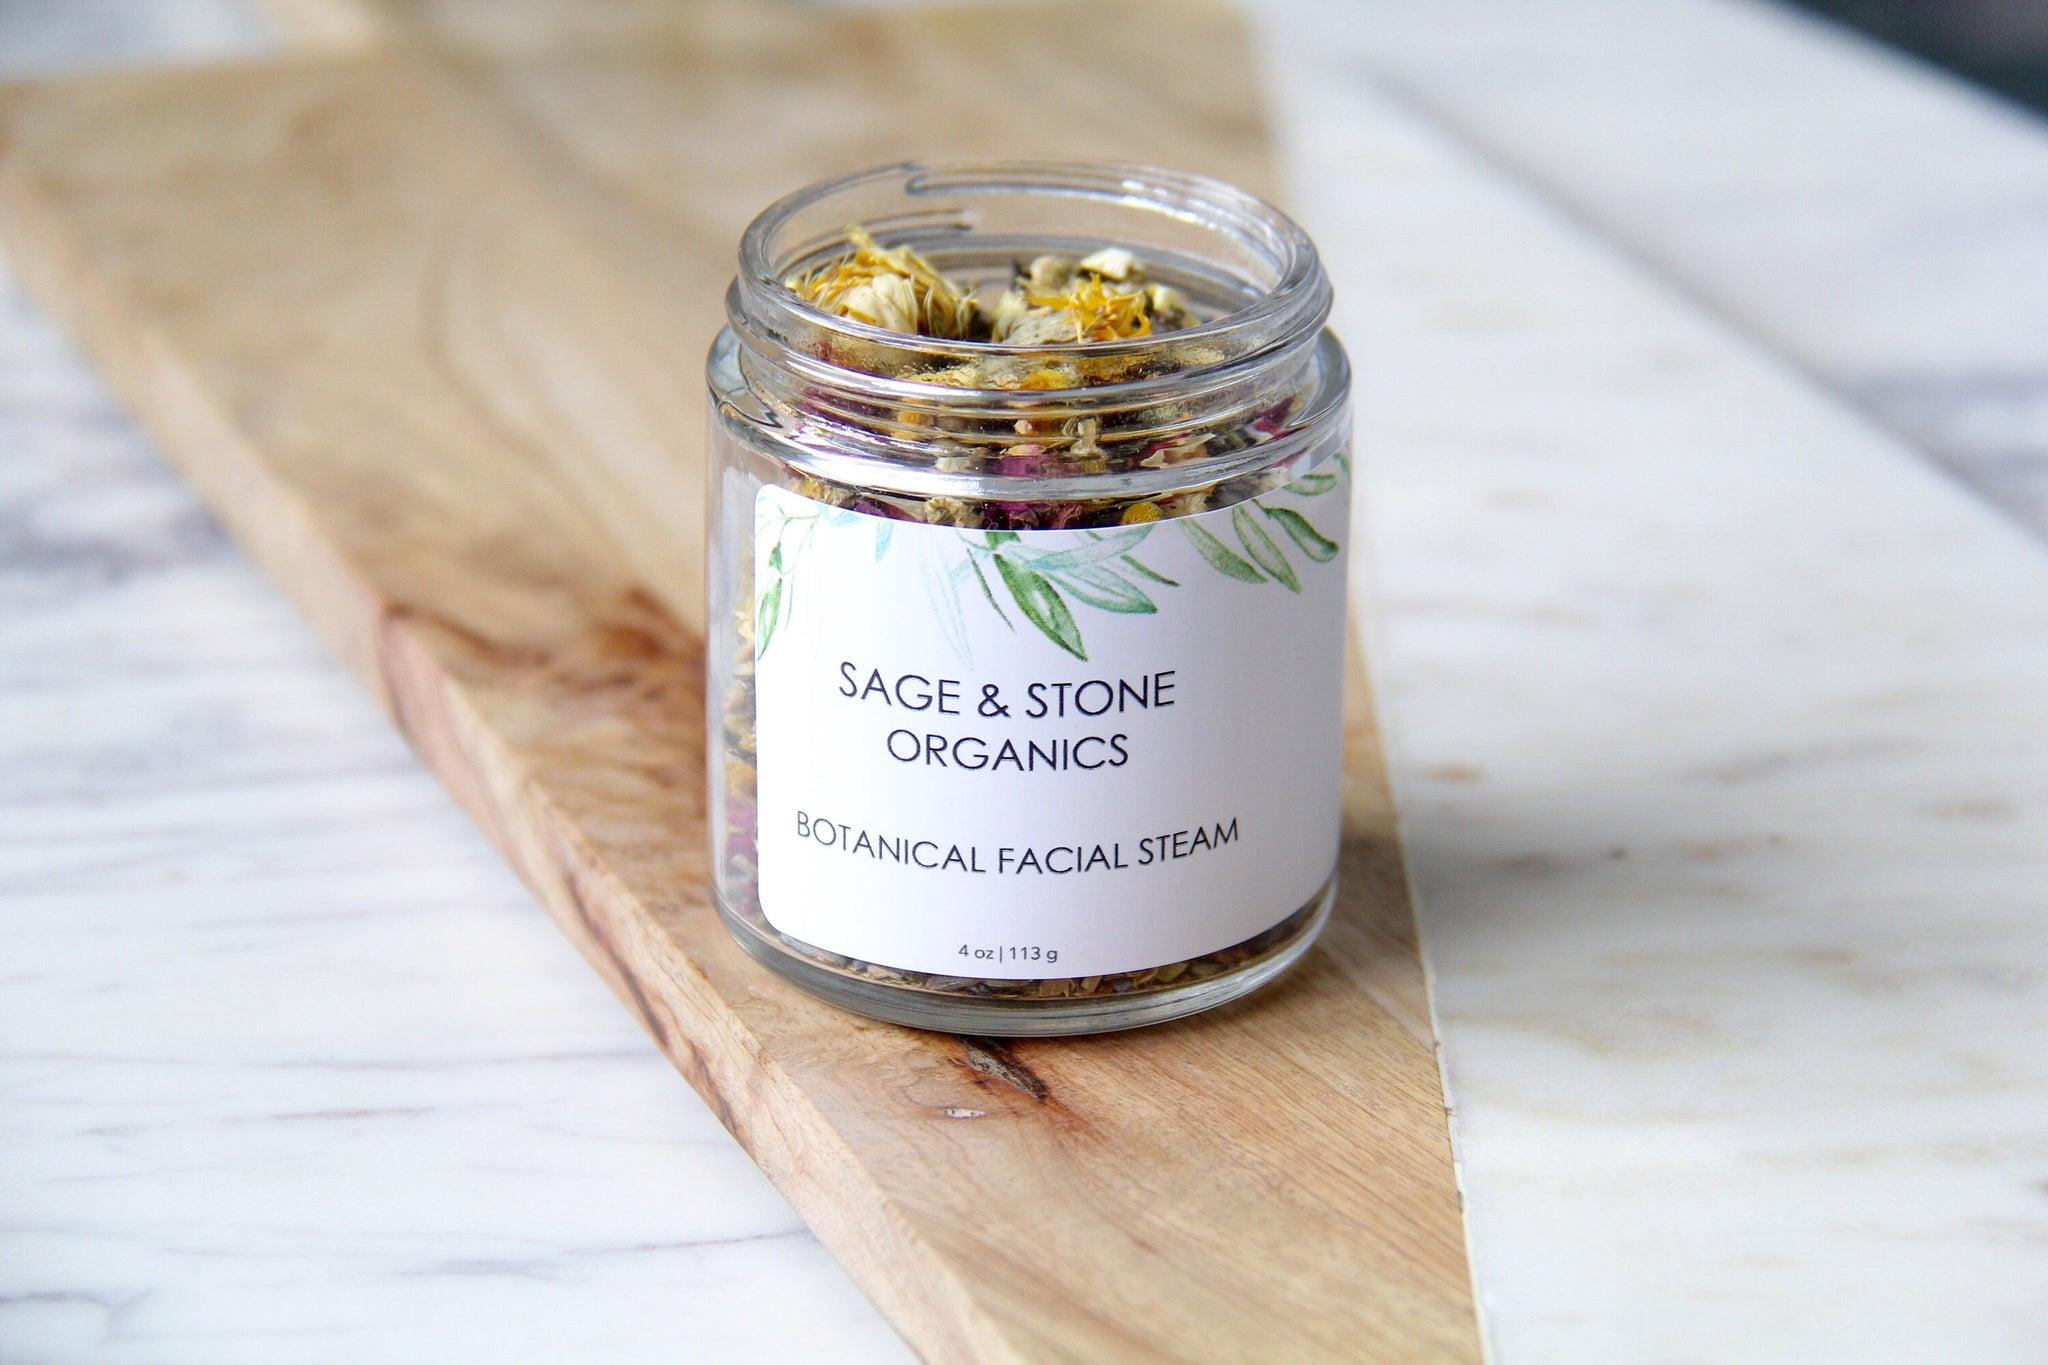 Botanical Facial Steam